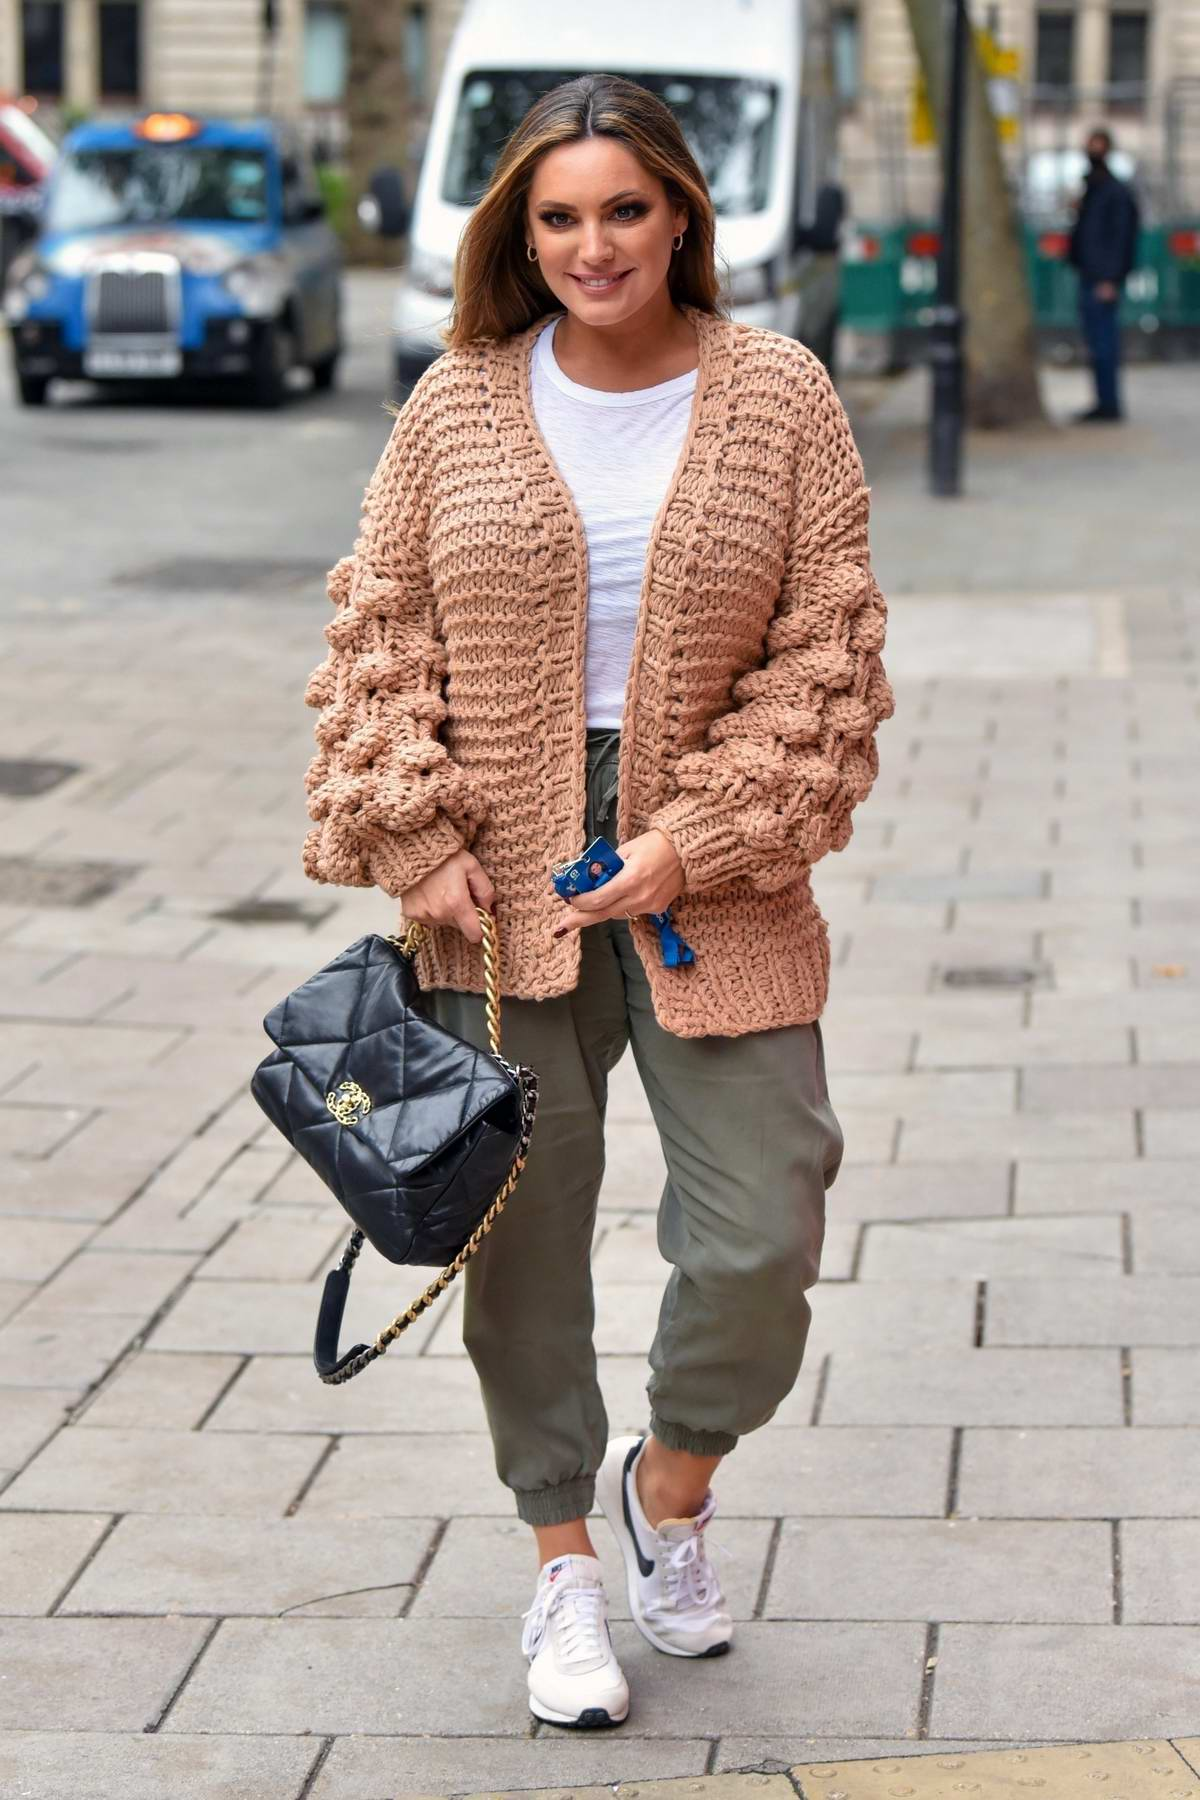 Kelly Brook looks cozy in a knitted cardigan as she arrives for her Heart radio show in London, UK